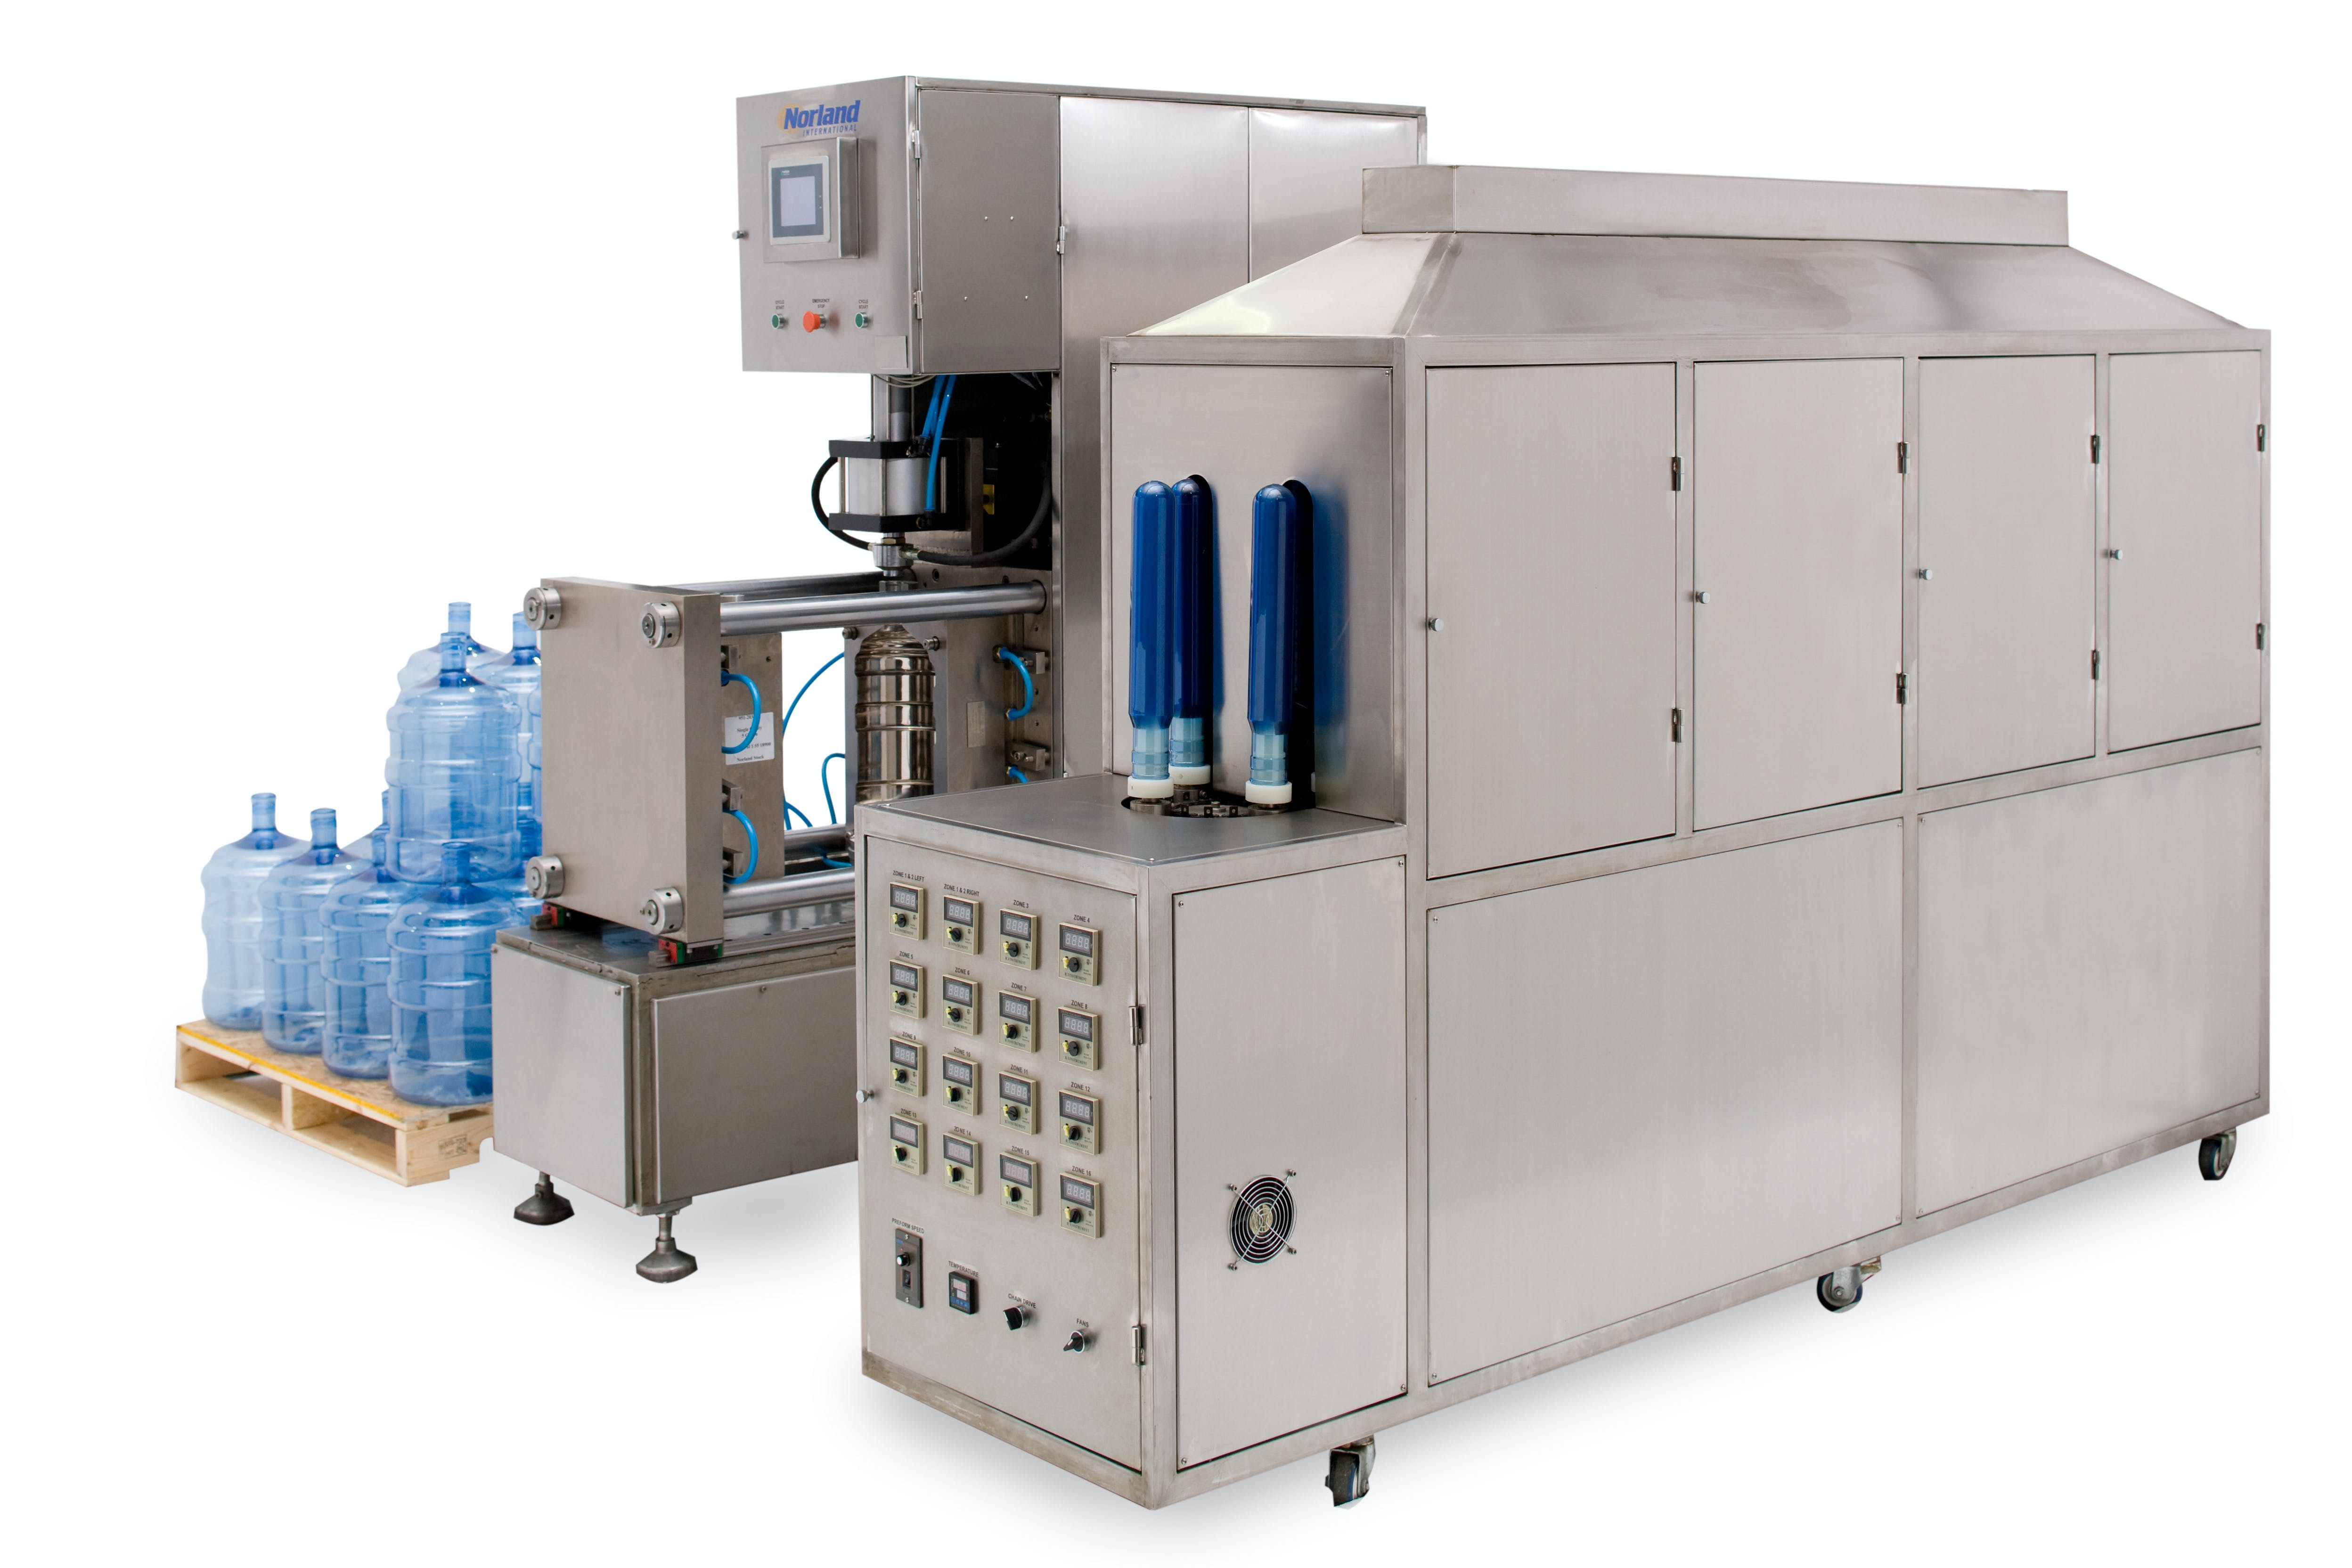 BM100 - Blow Molder (Designed for water bottles only) - sold by American Beer Equipment